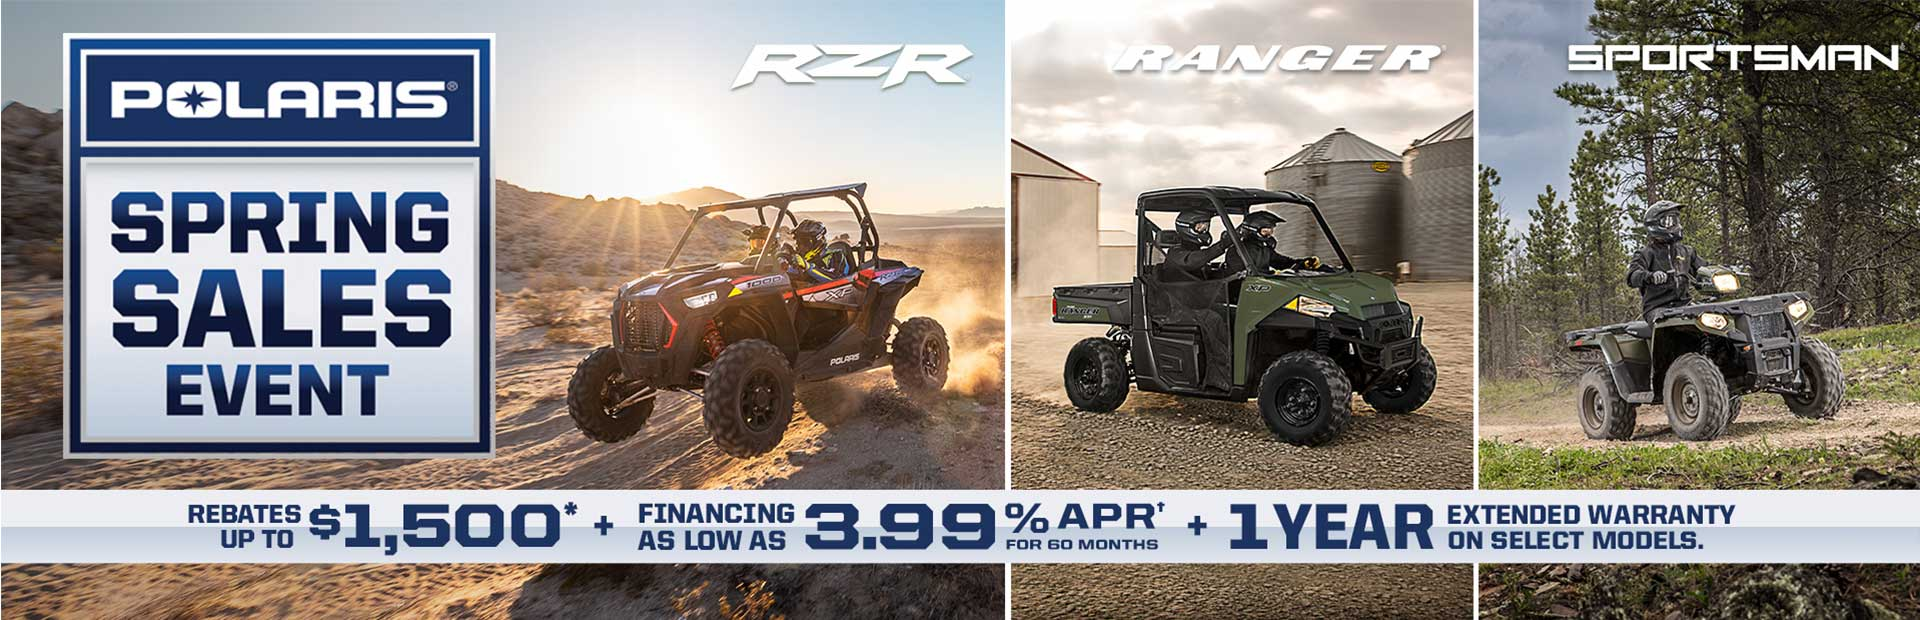 Polaris Industries: Polaris Spring Sales Event